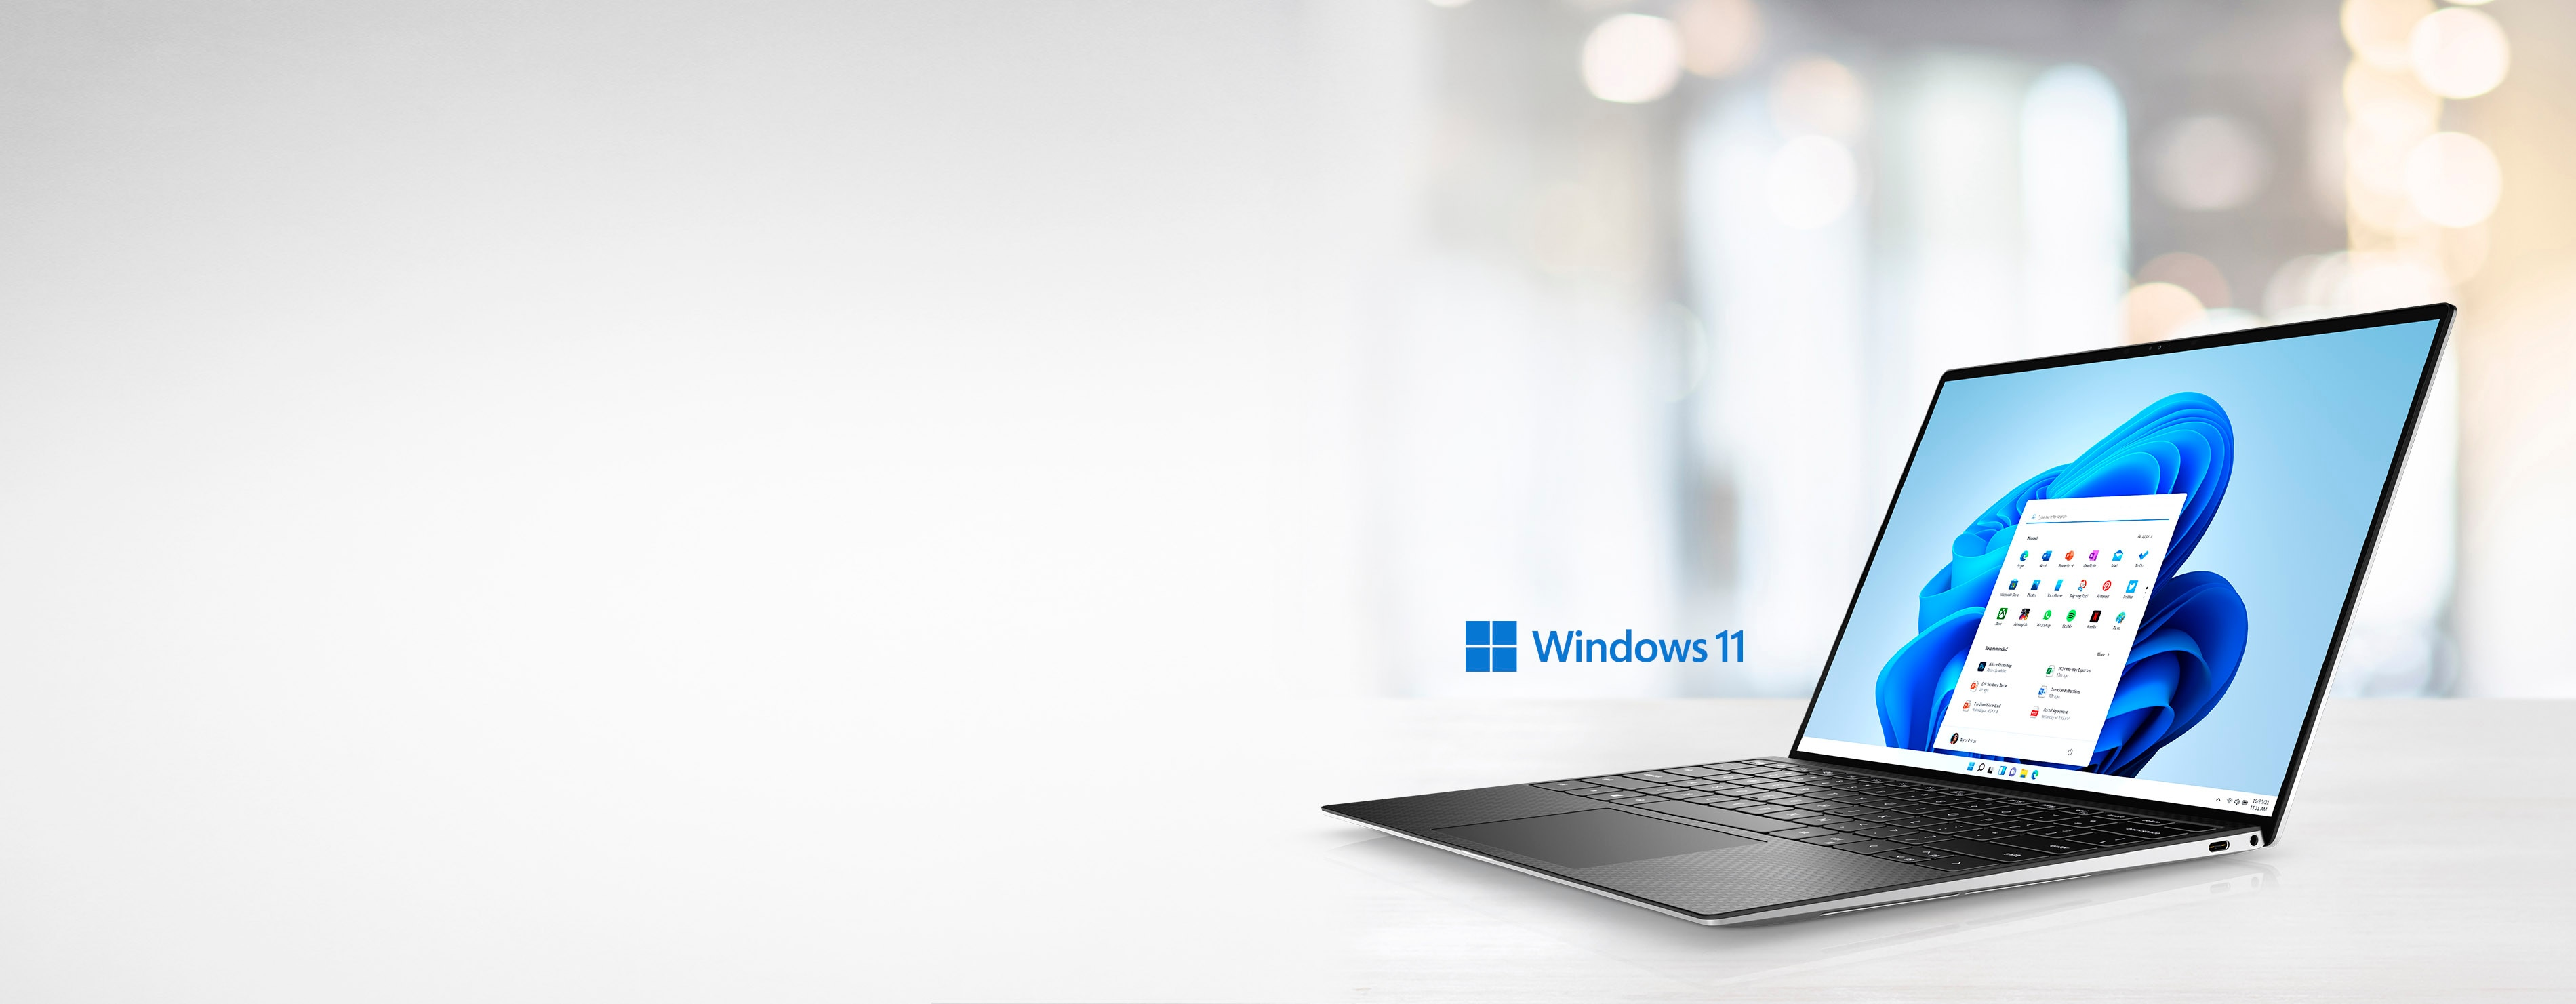 Dell_XPS_Laptop_With_Windows_11